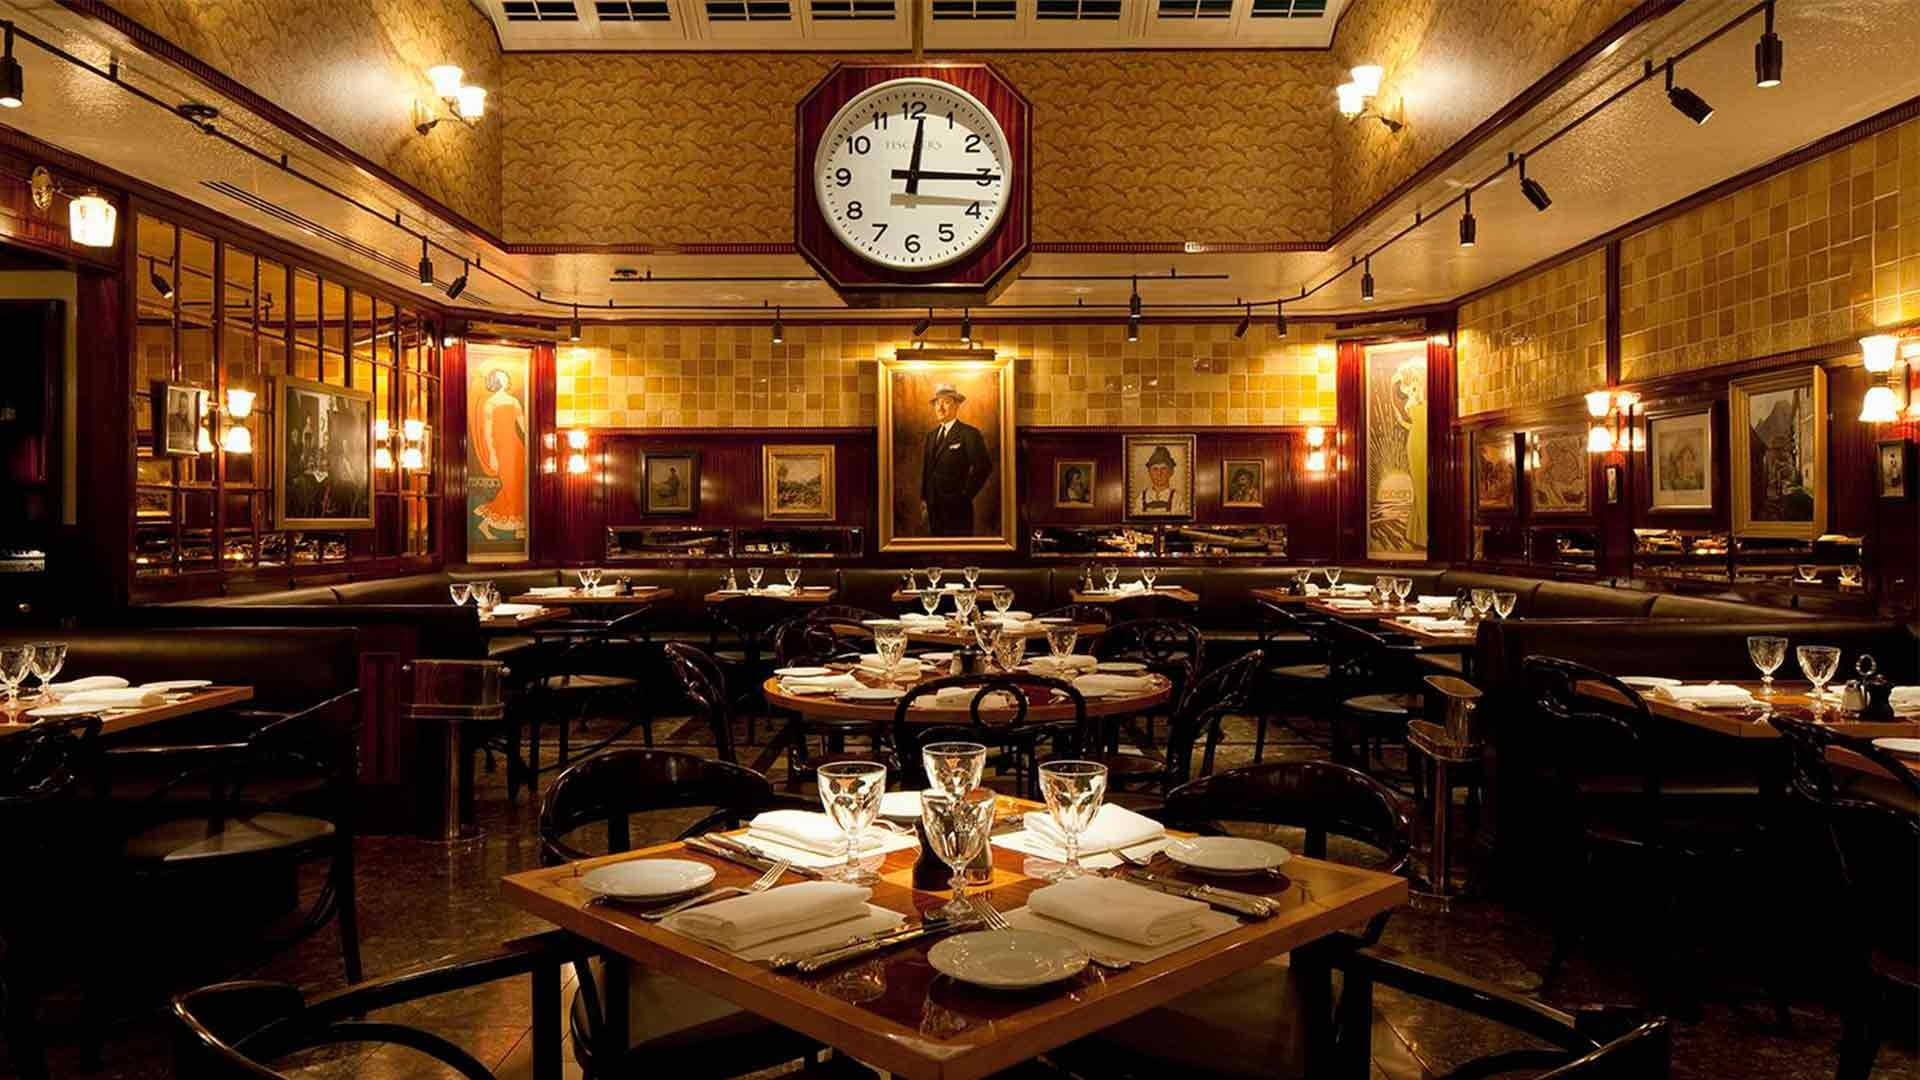 lighting and ambience in restaurant Customers who feel comfortable in your establishment will want to keep coming back for more if you get the ambience right in your restaurant,.